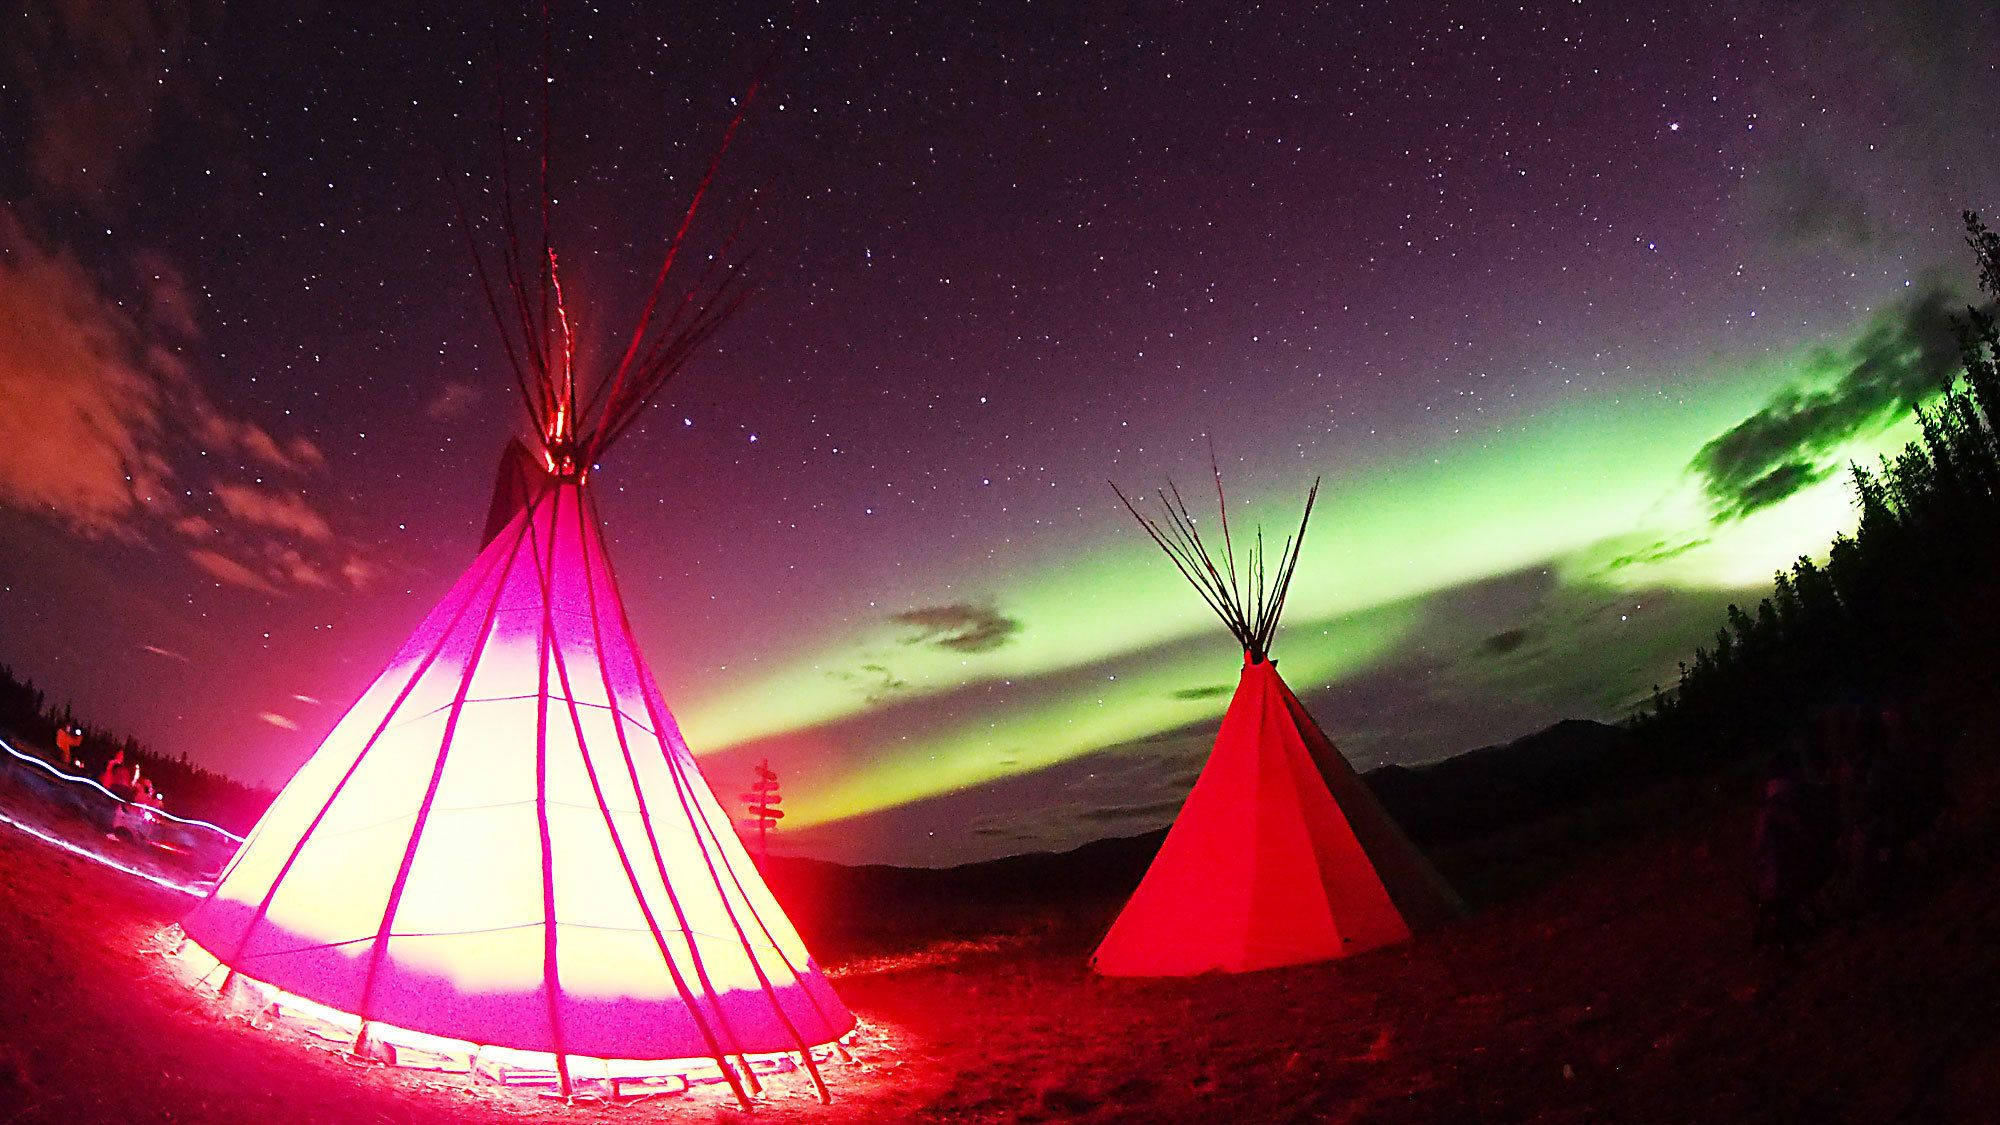 Teepees at the Yukon Night Sky Aurora Borealis Viewing in the Canada Territories